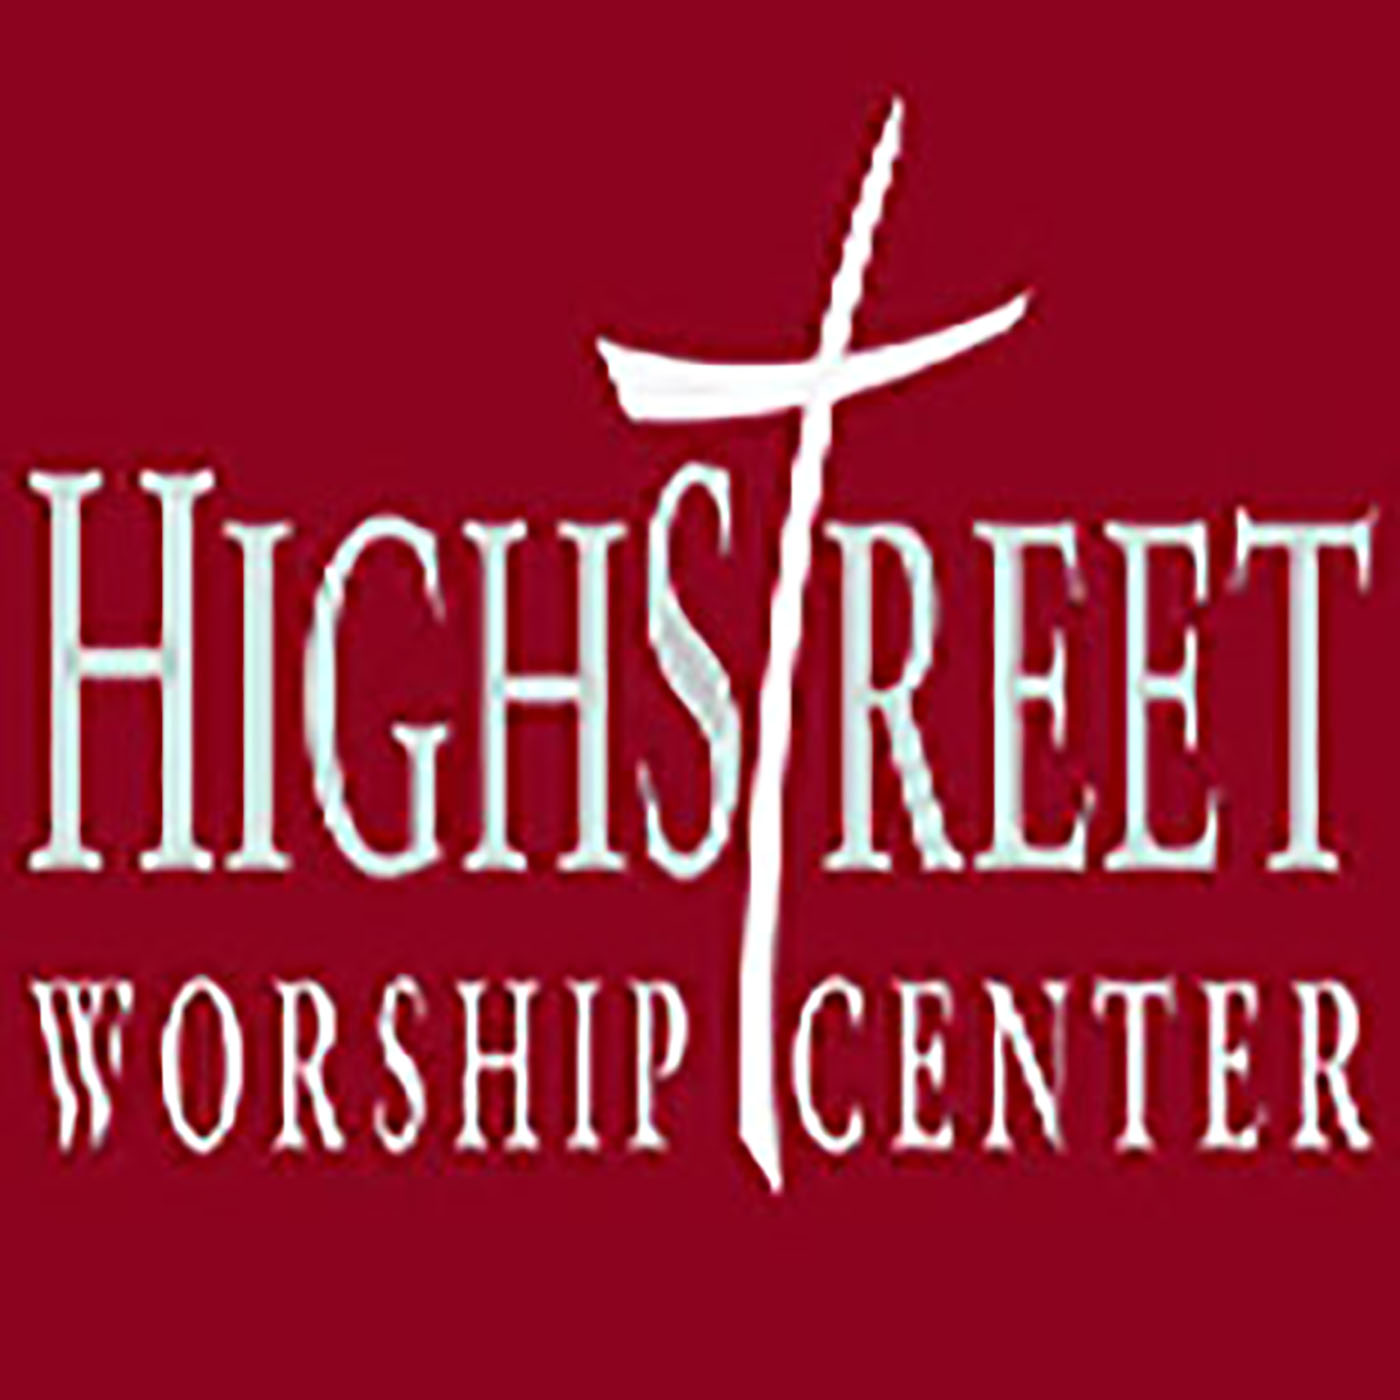 High Street Worship Center Sermon